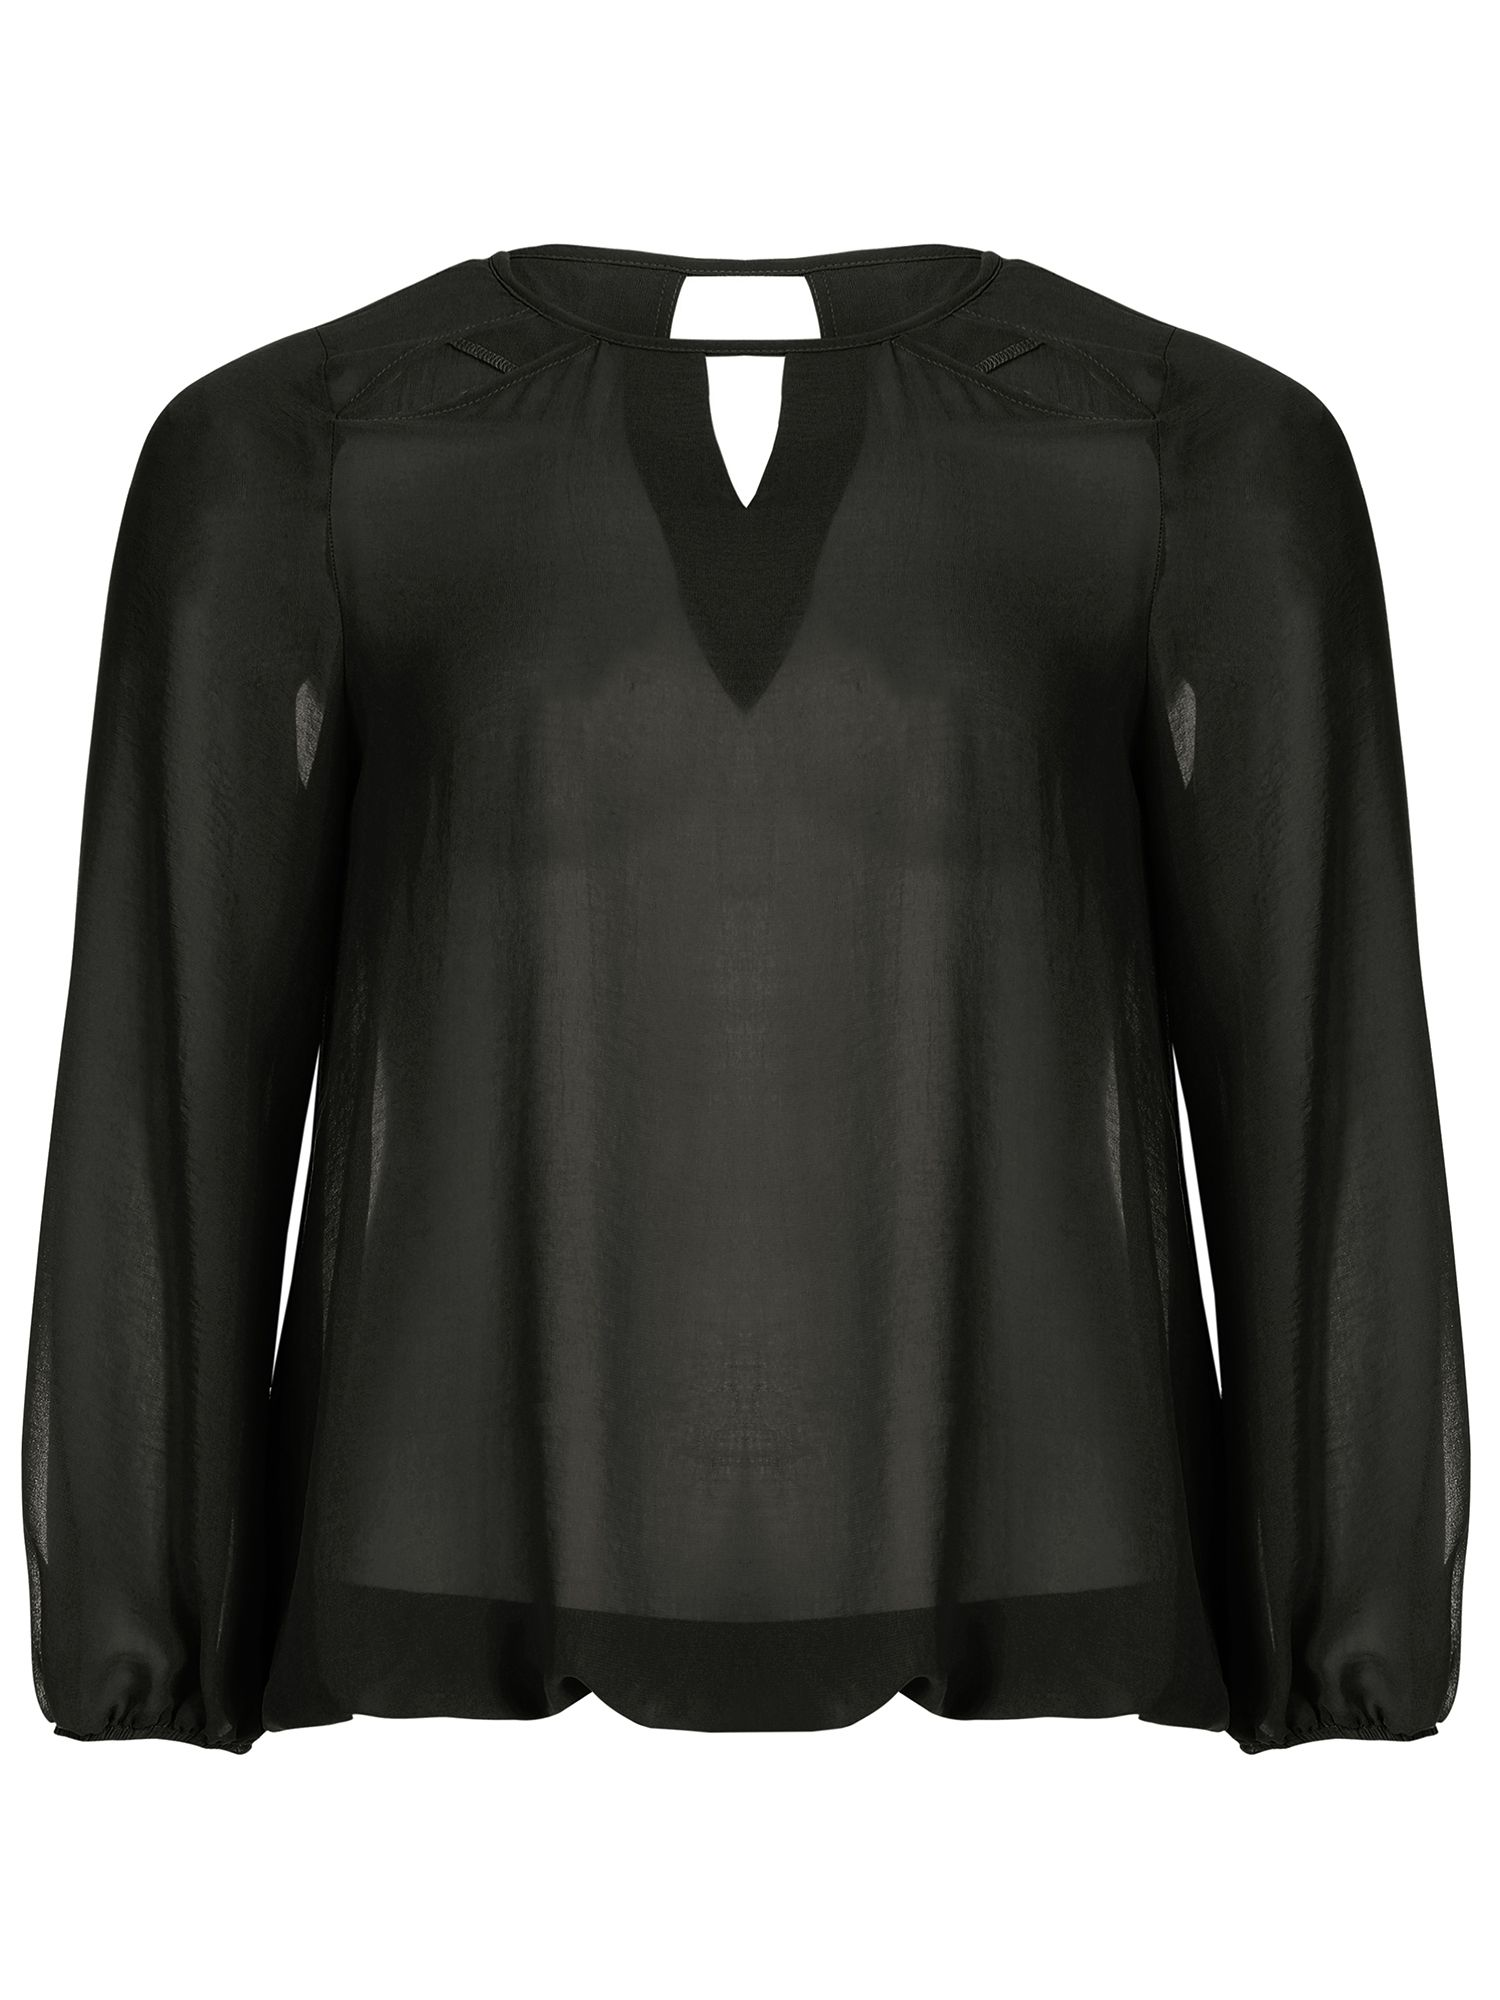 Threads Threads Plus Size Star Cut Out Sheer Blouse, Black